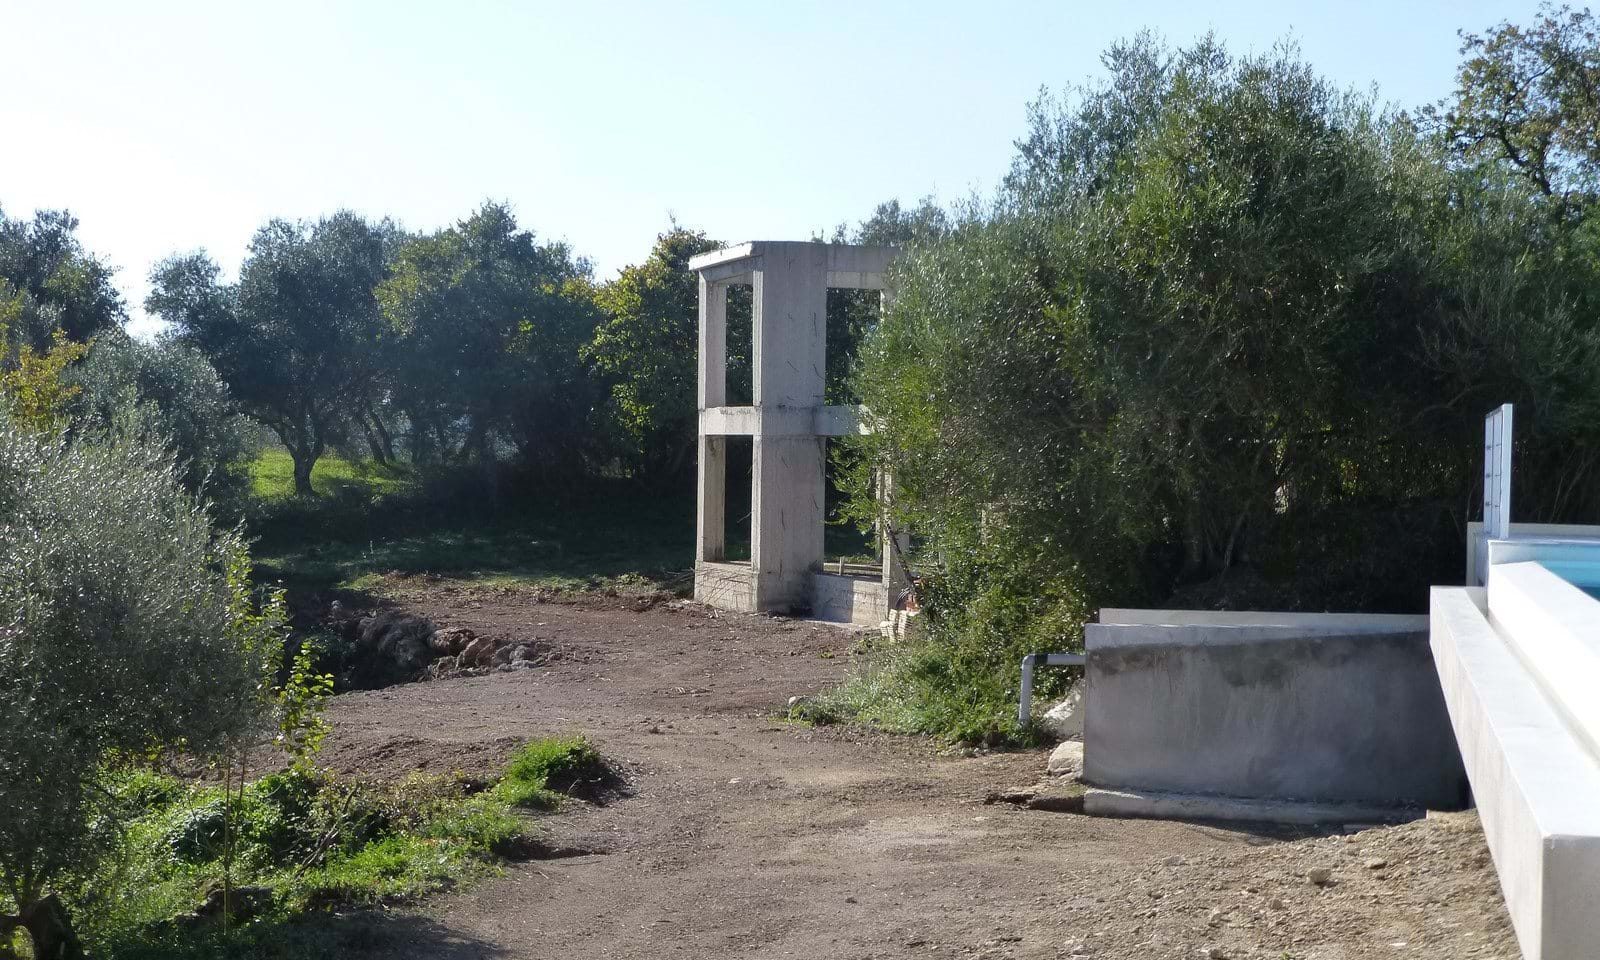 Property for sale in Corfu, Greece